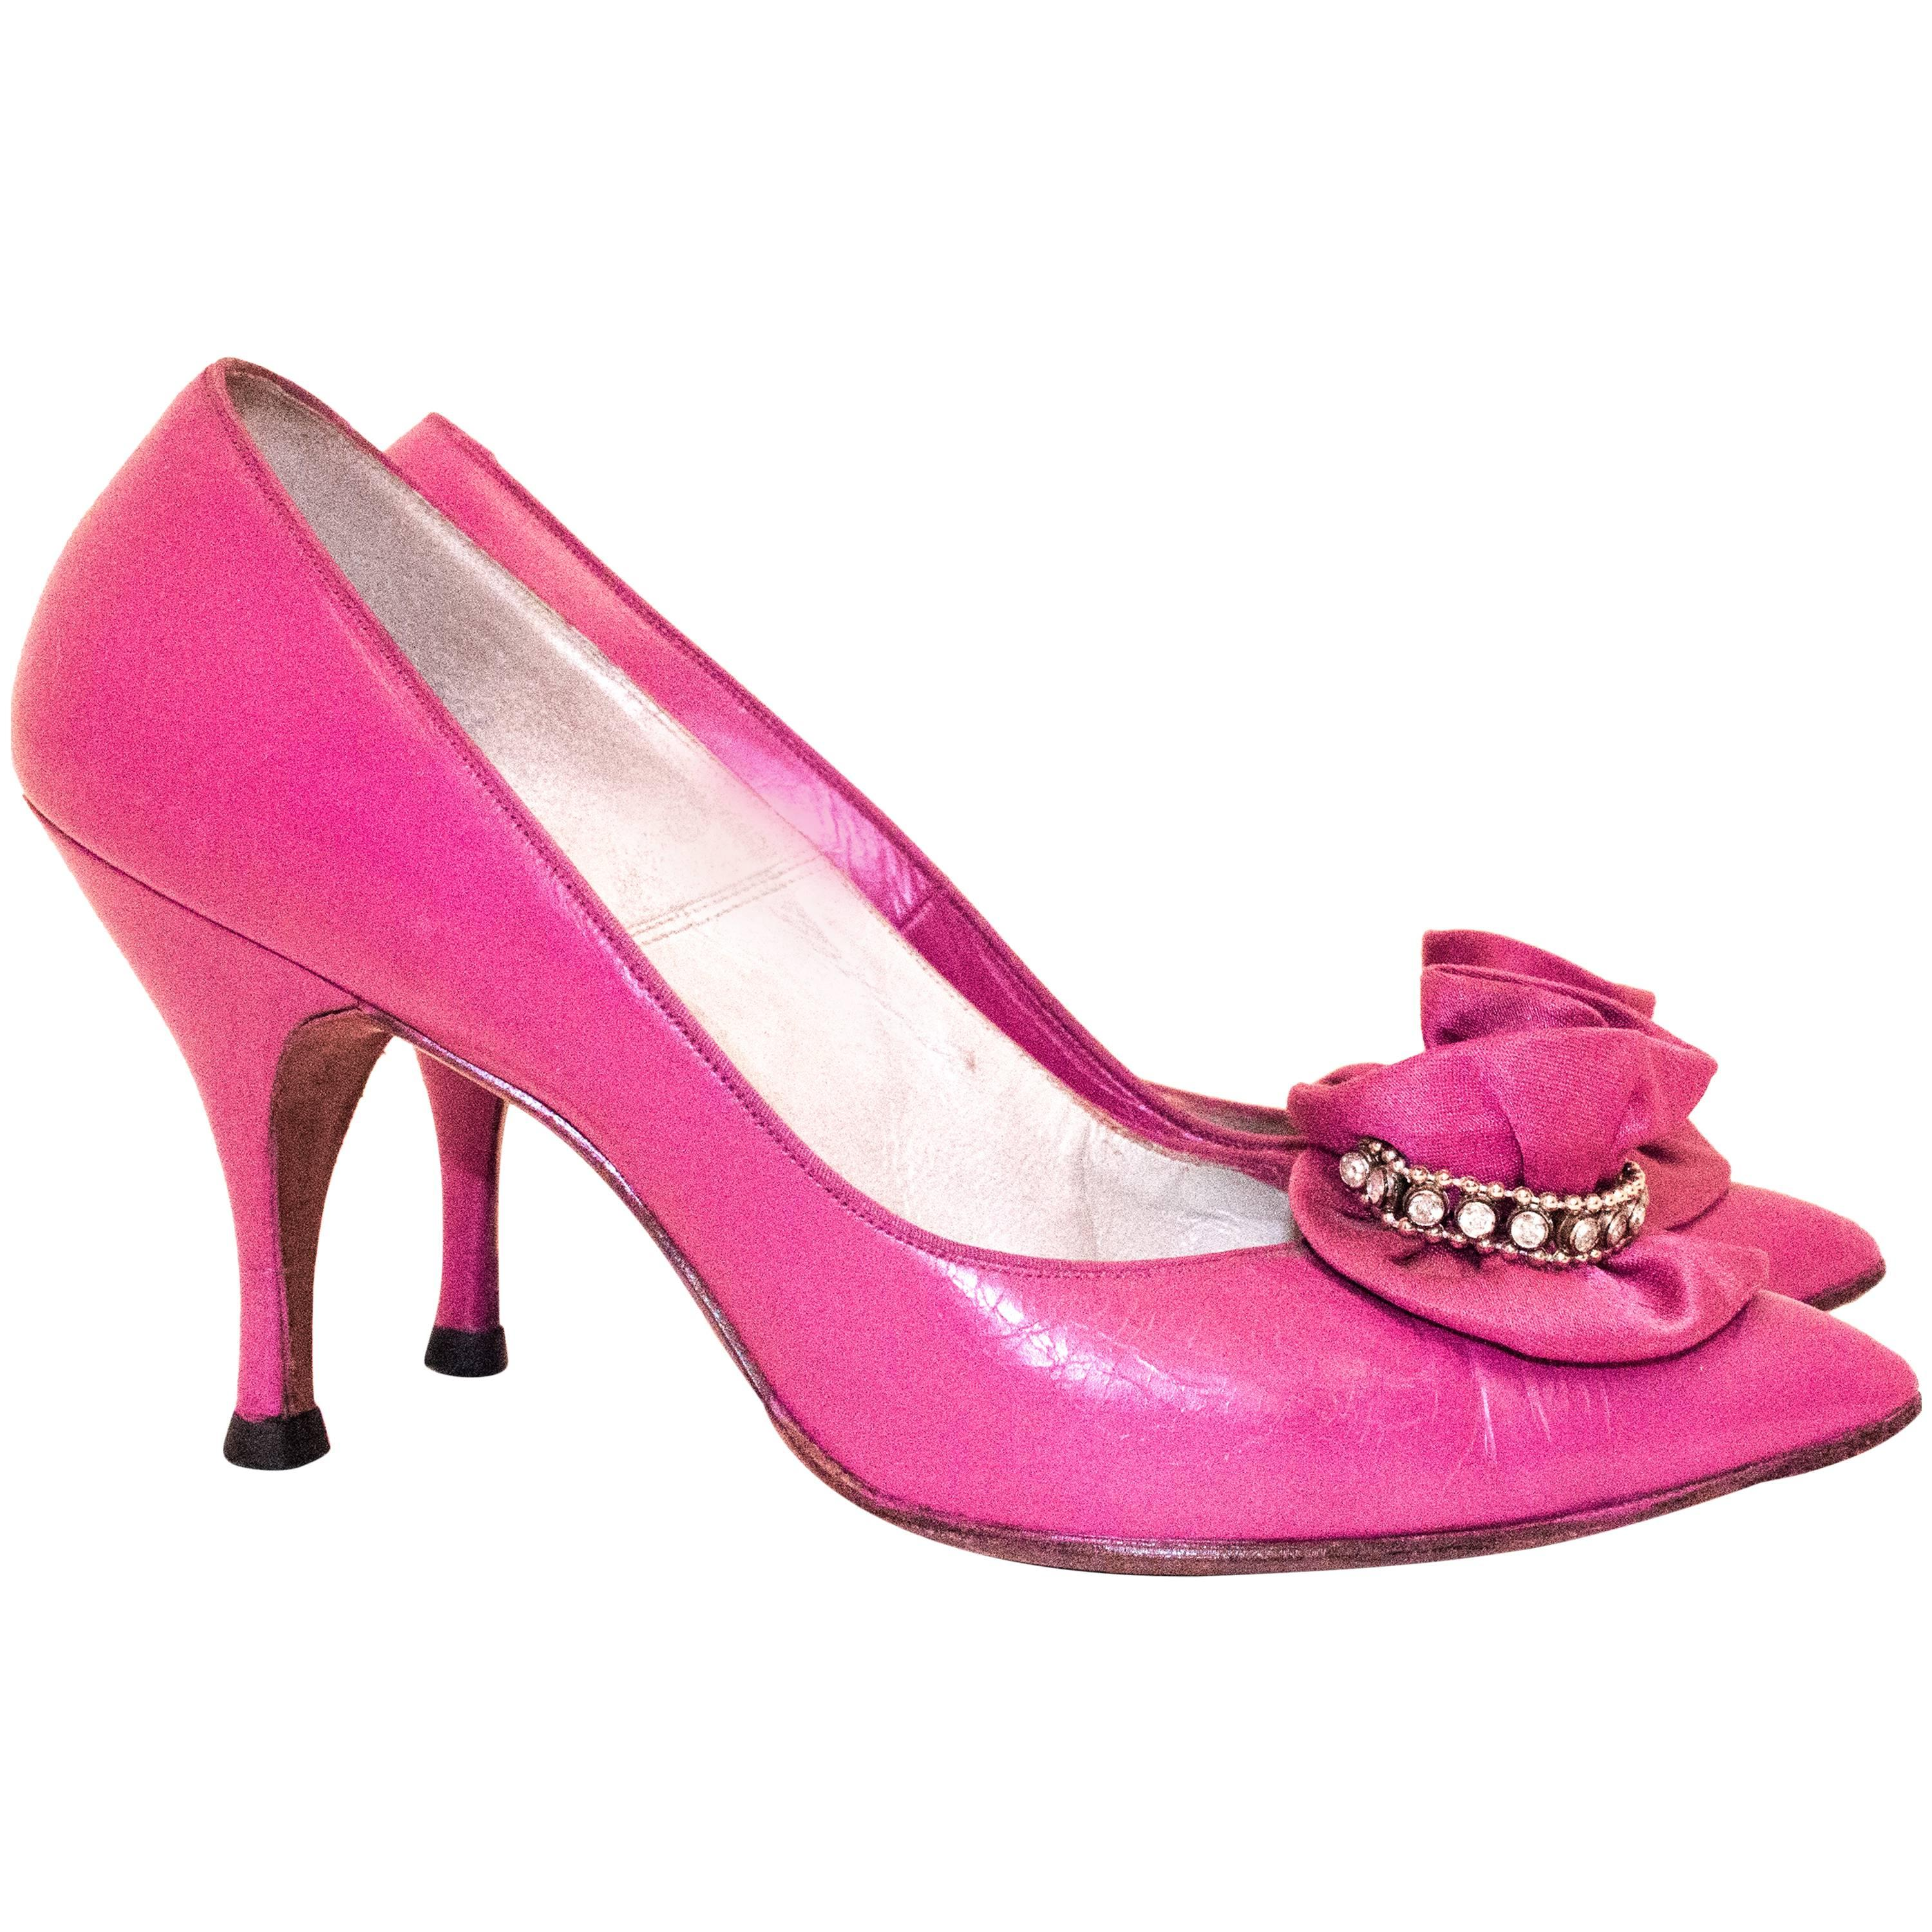 fefbb9b73716 60s Hot Pink Heels with Floral Embellishment For Sale at 1stdibs